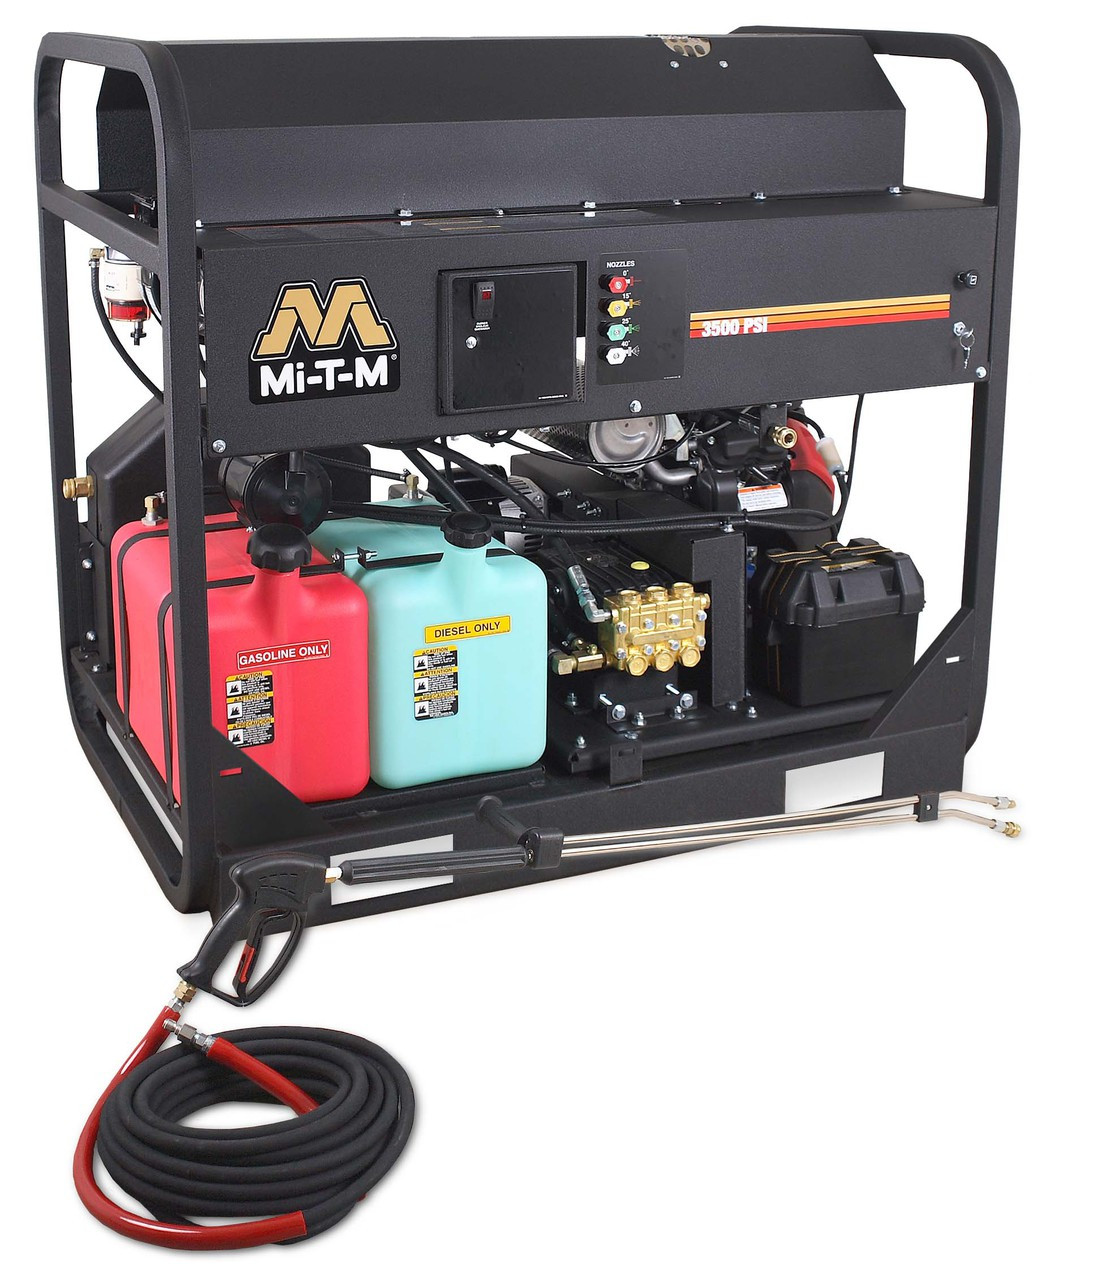 hight resolution of mi t m wiring diagram wiring library mi t m hs gas hot water pressure washer 3500